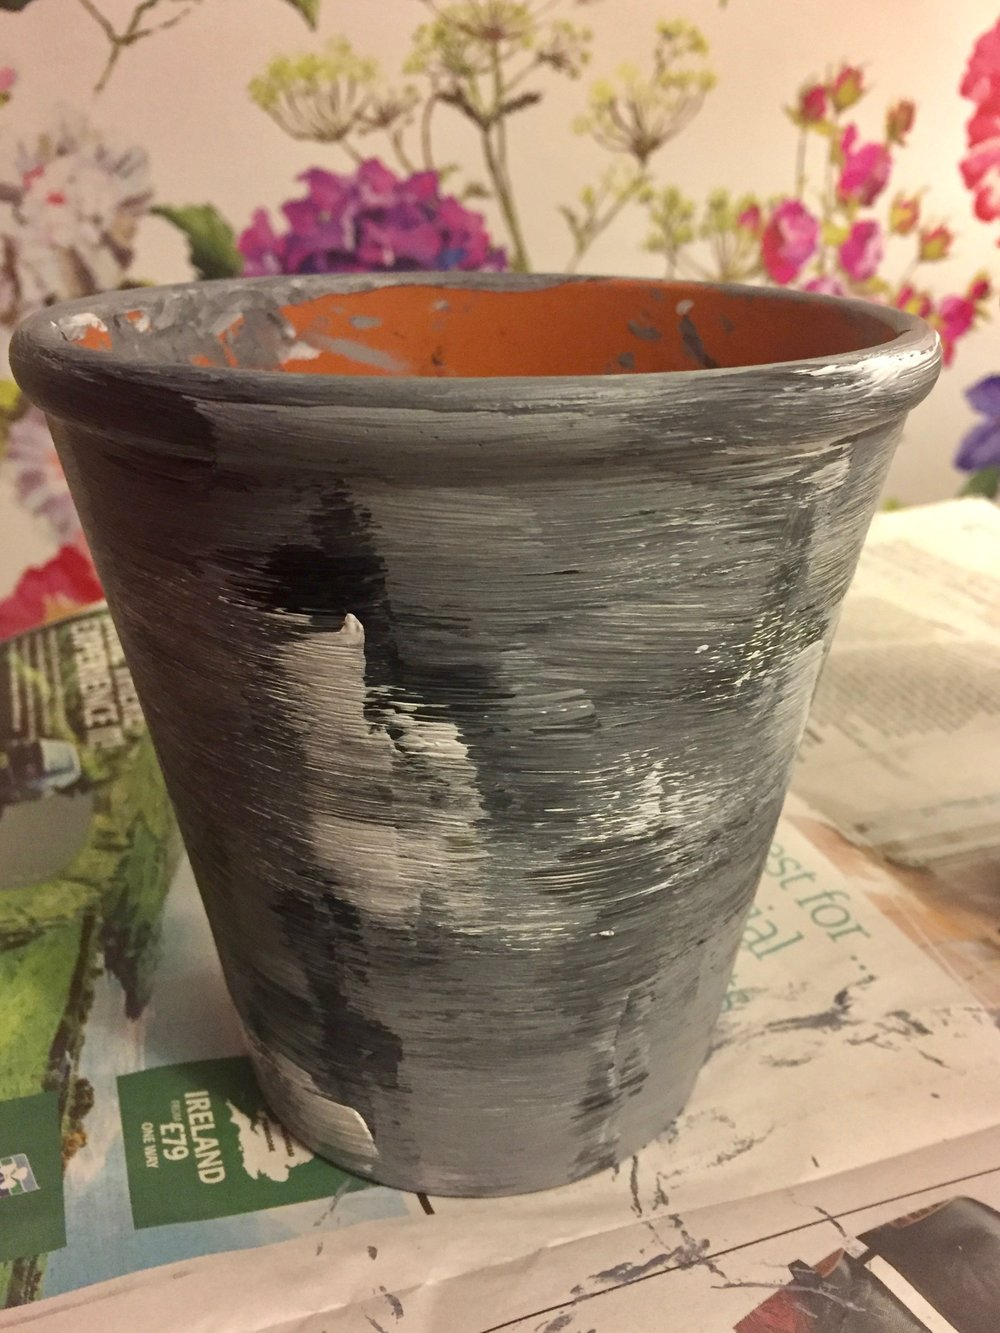 Painted up terracotta pot waiting for some silver leaf to be added